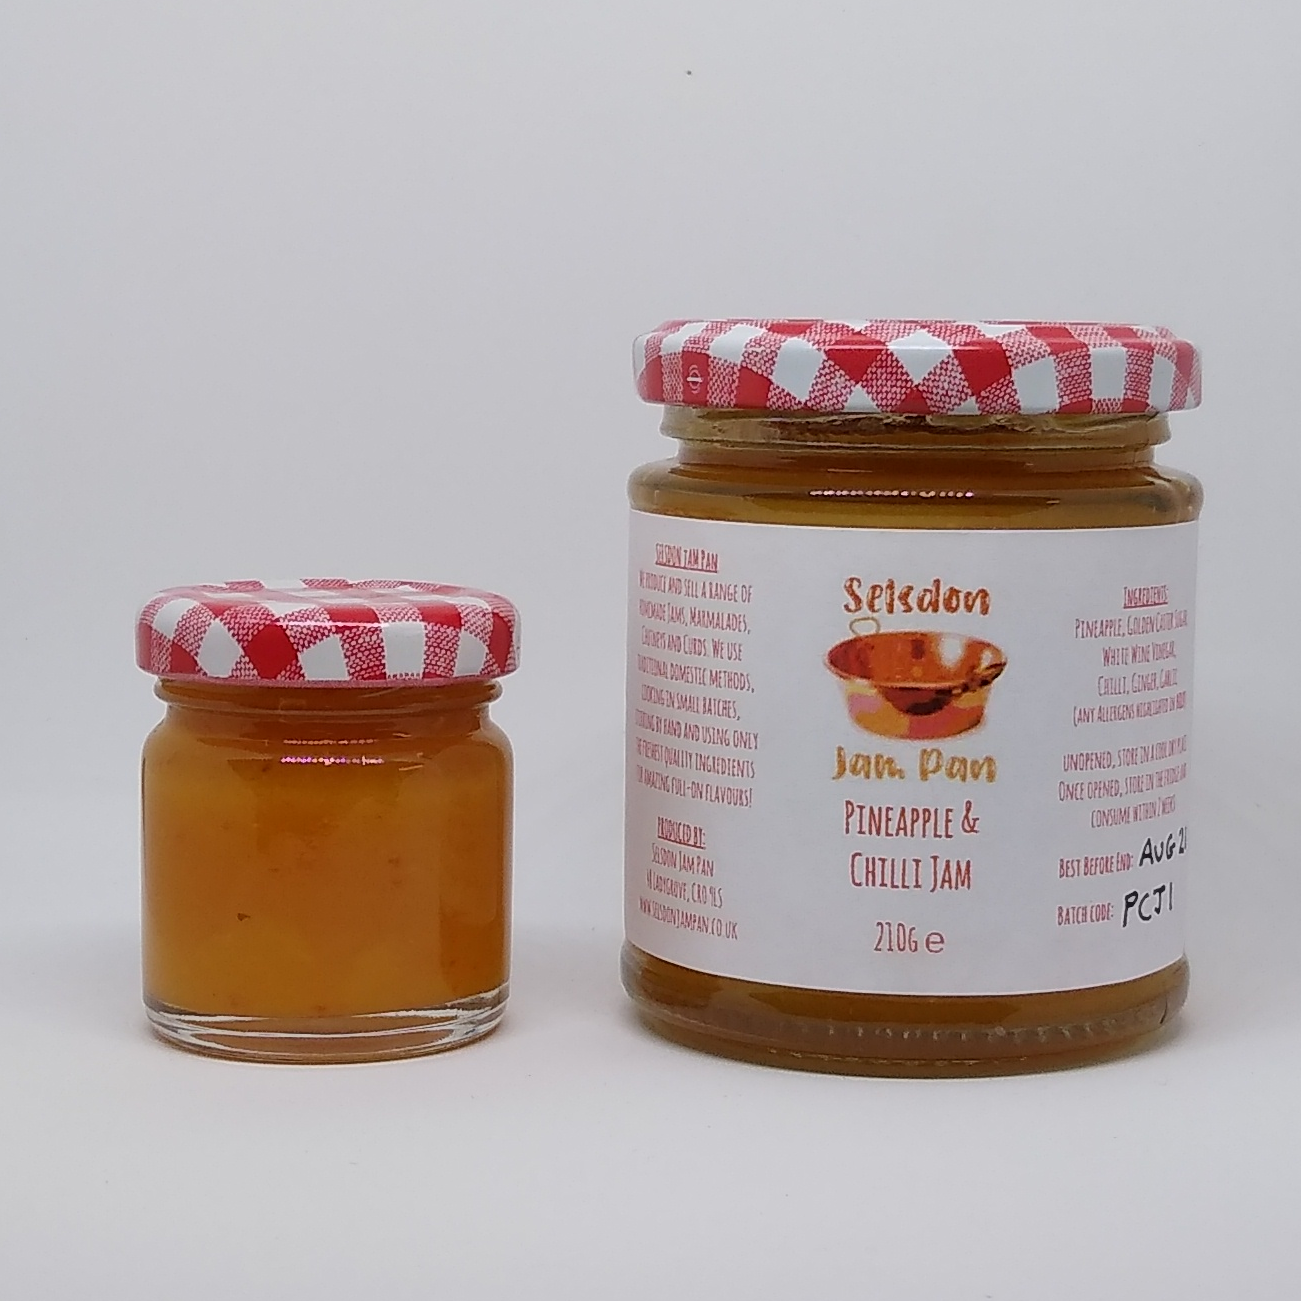 Pineapple & Chilli Jam